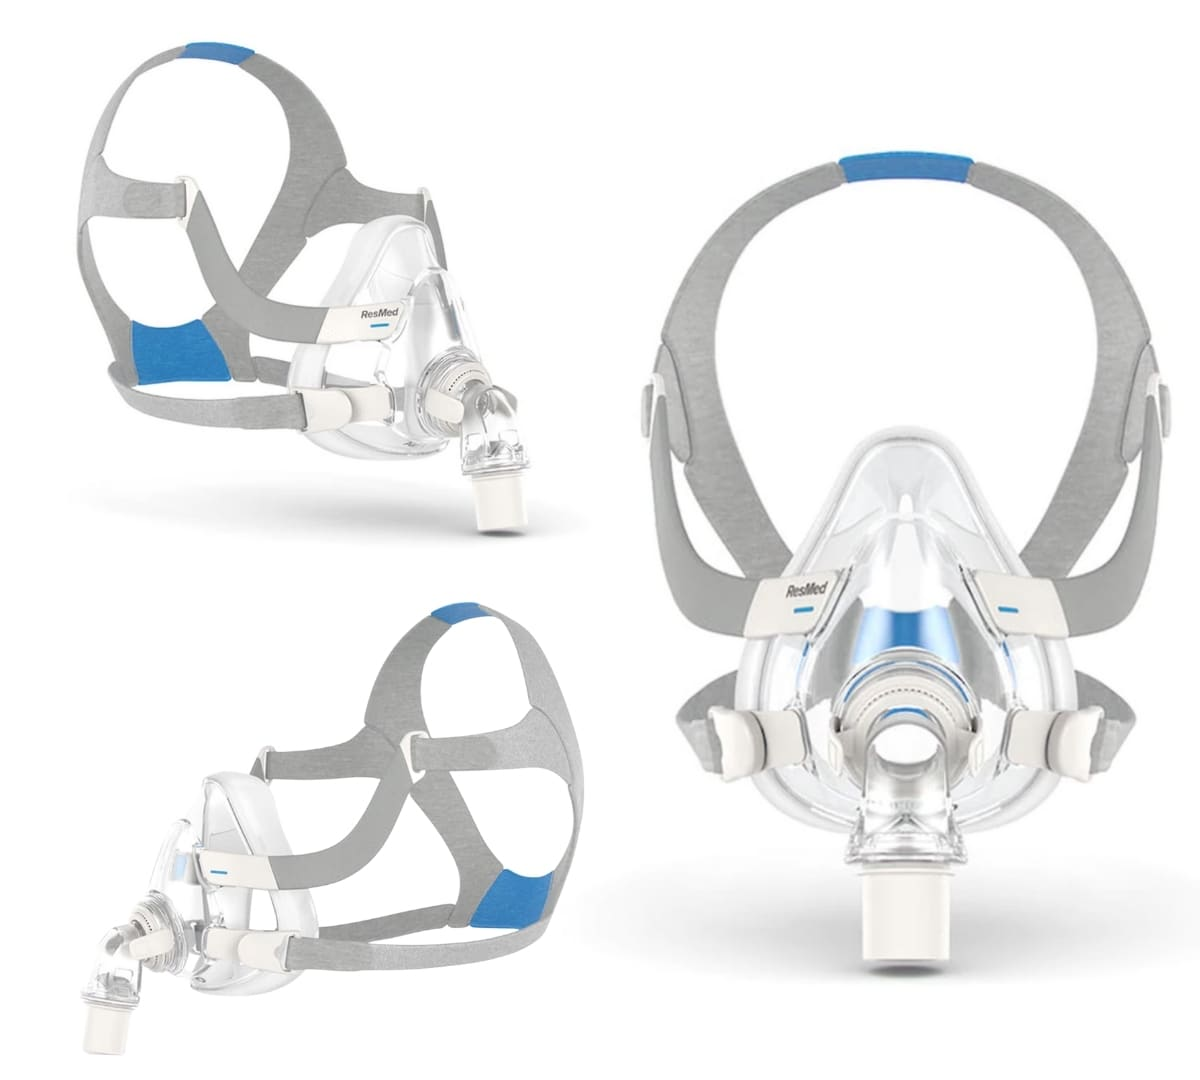 three different angles of the AirFit F20 mask